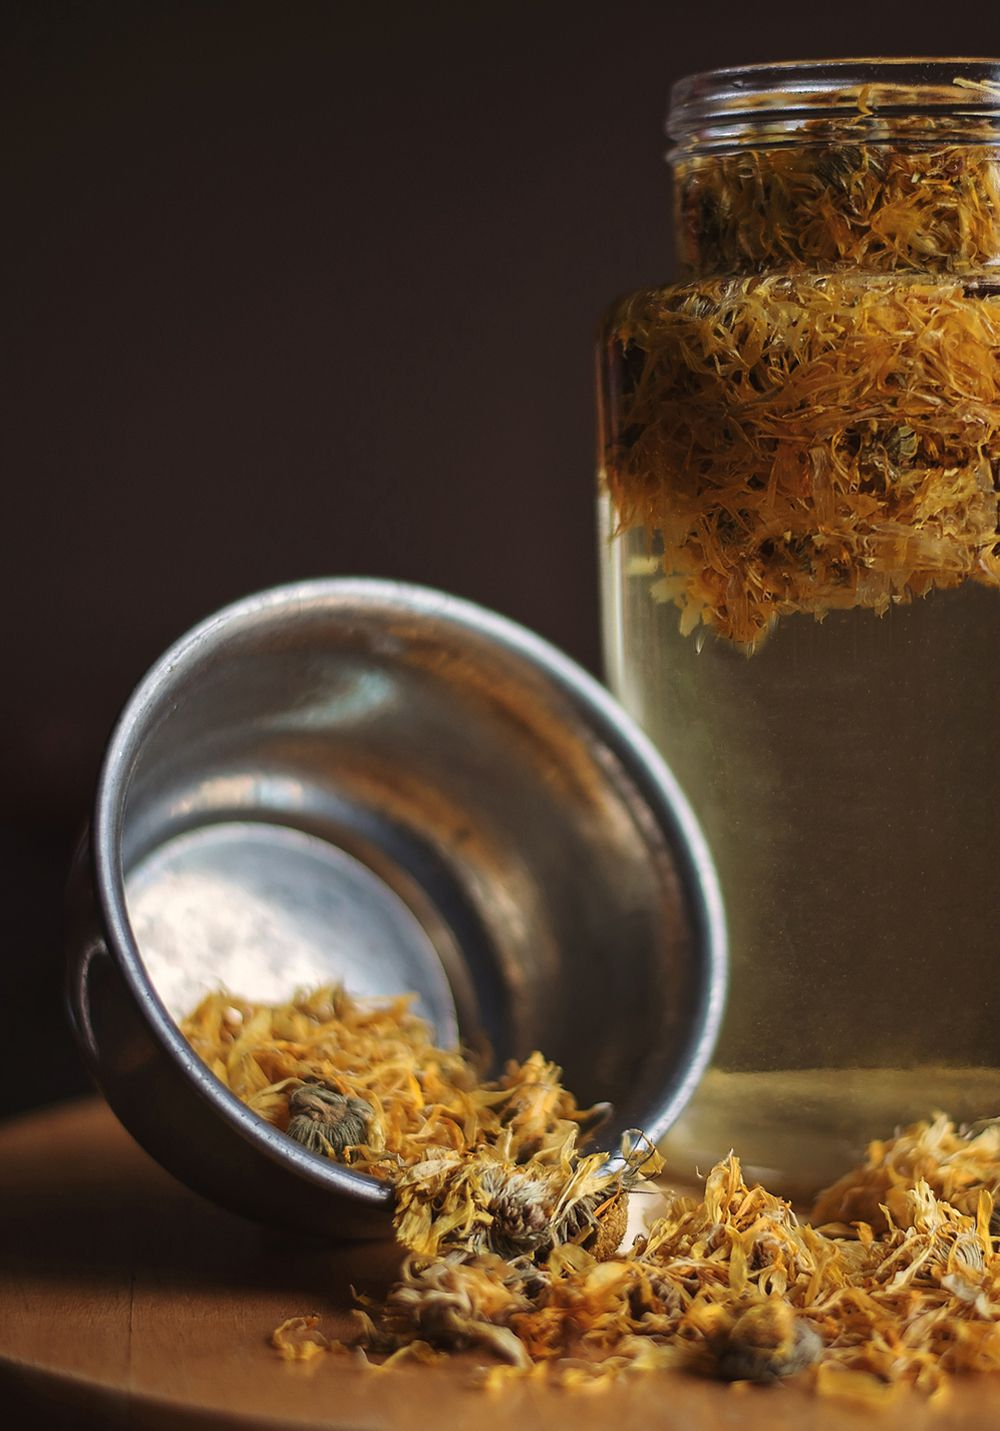 dried witch hazel and extract oil